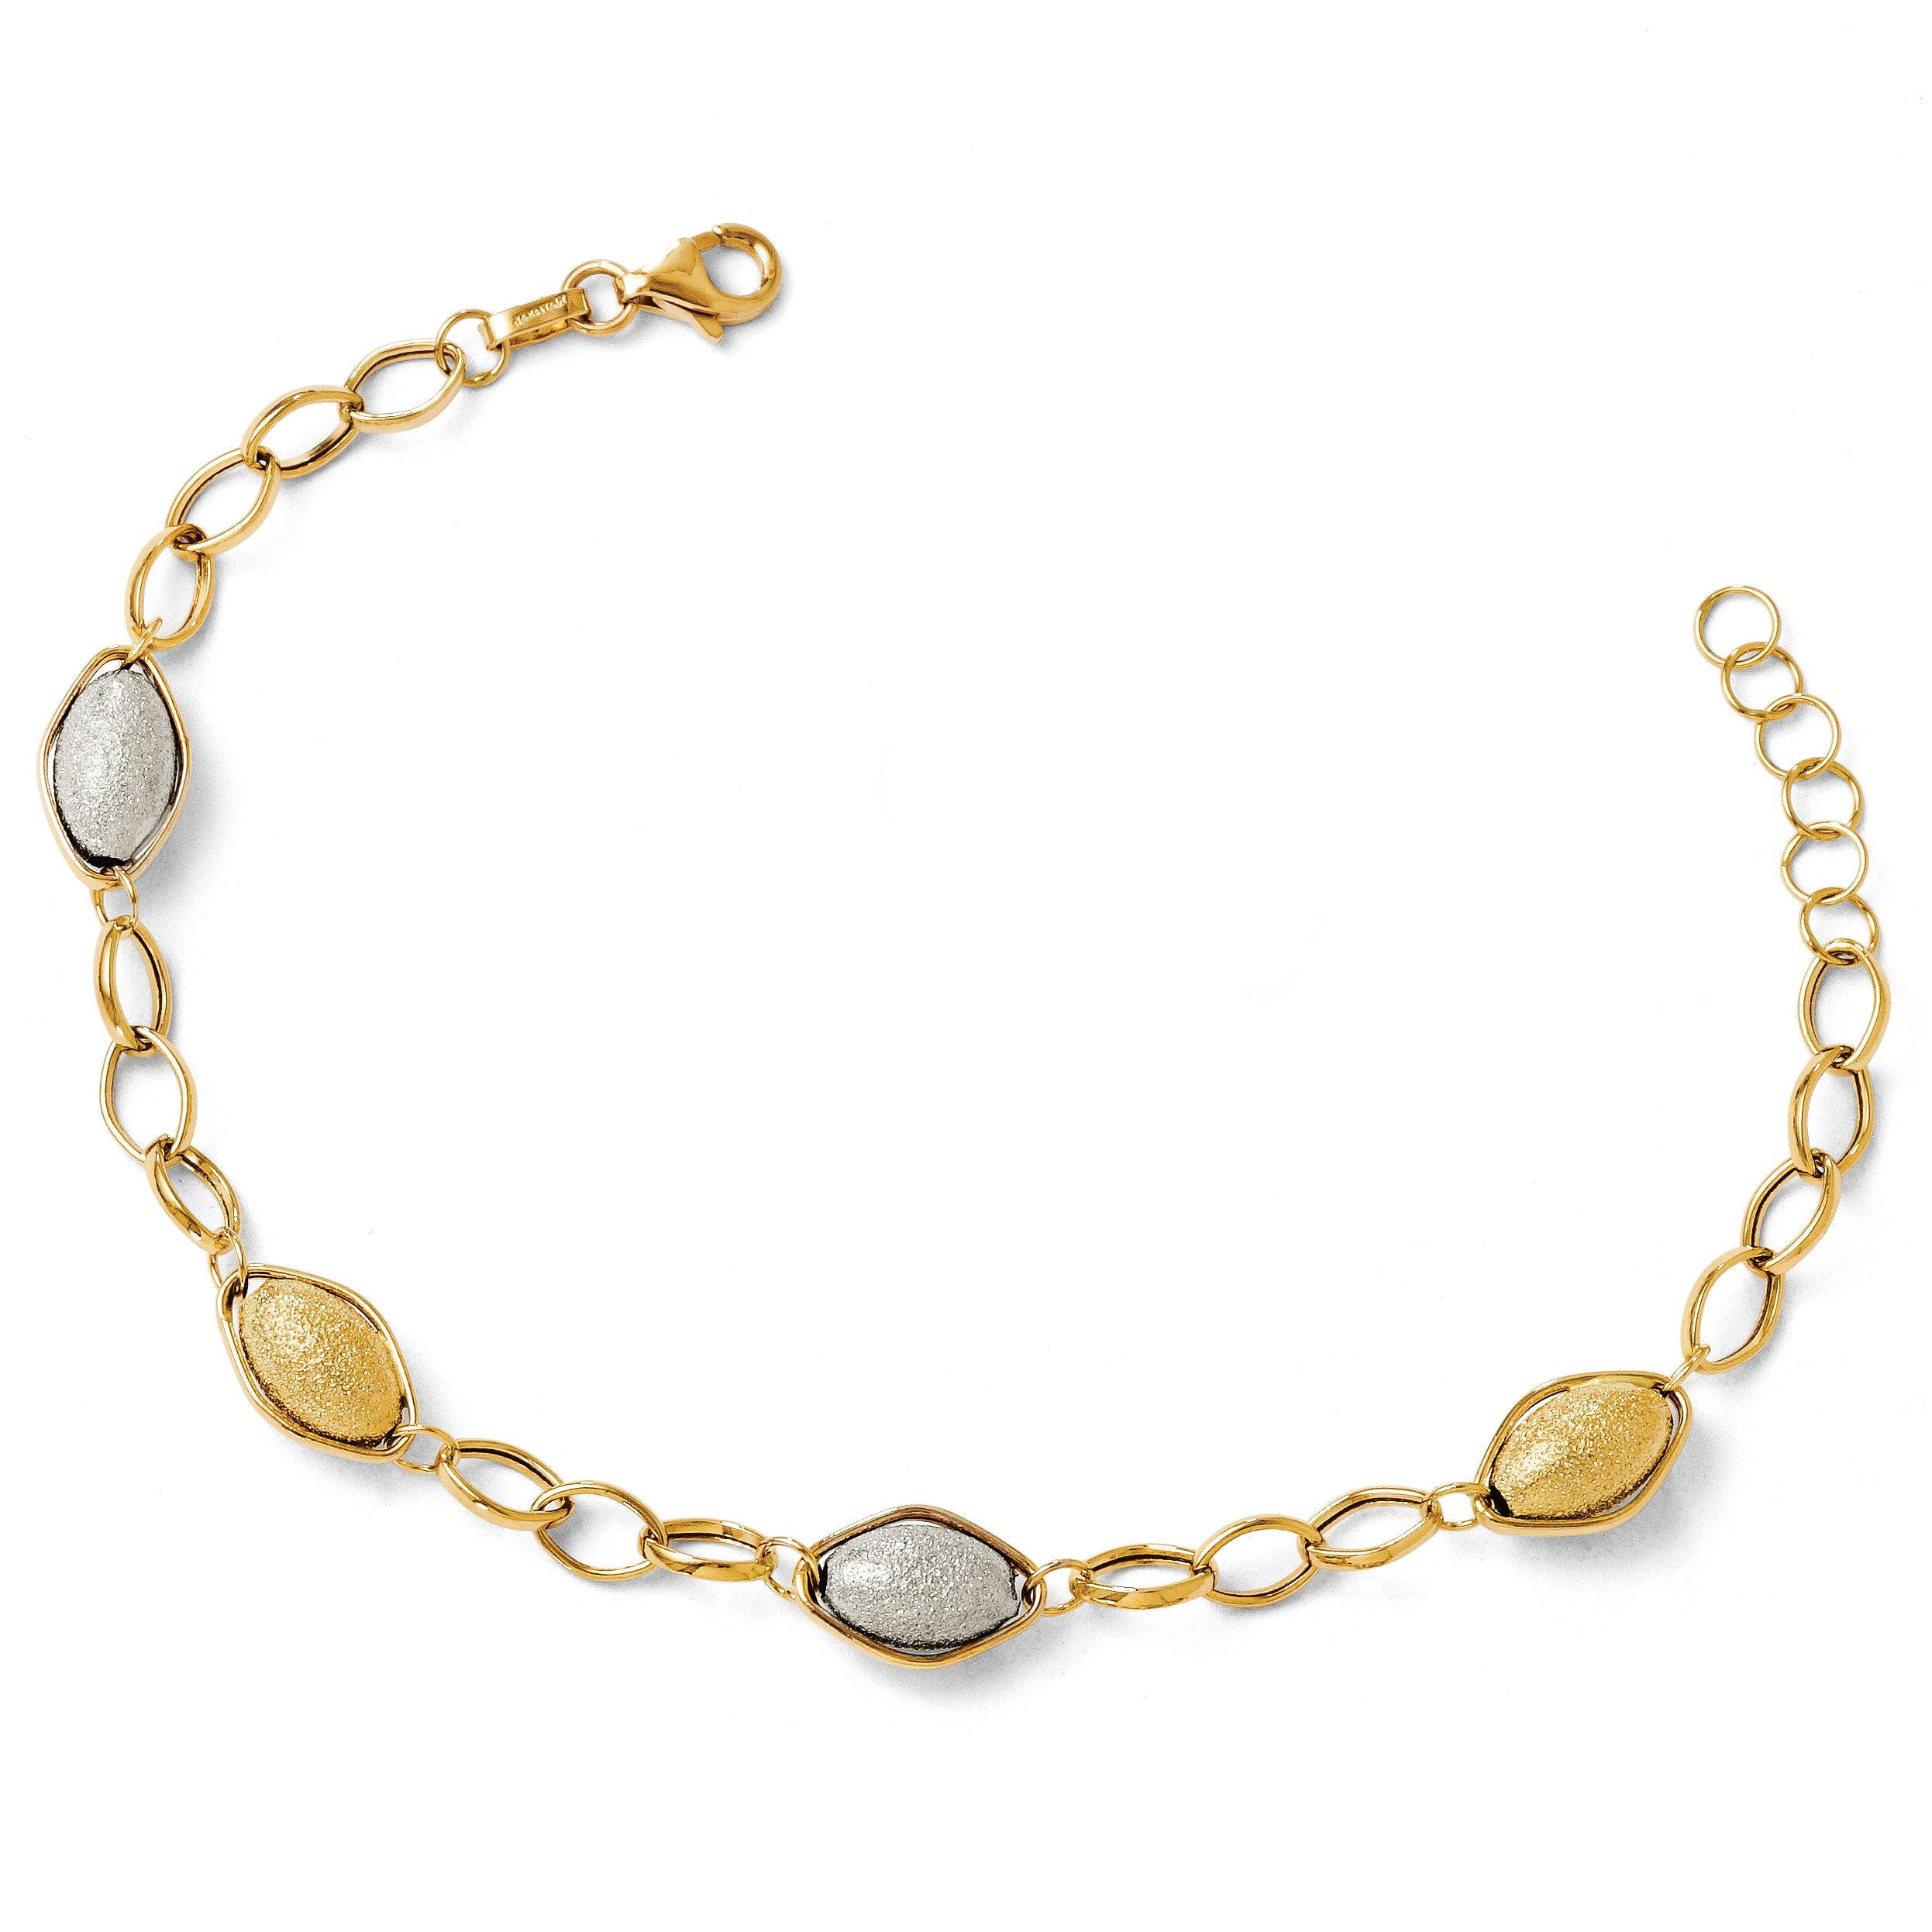 Leslie's 14K Two-tone Polished and Textured Beads w/1in ext. Bracelet LF201 - shirin-diamonds